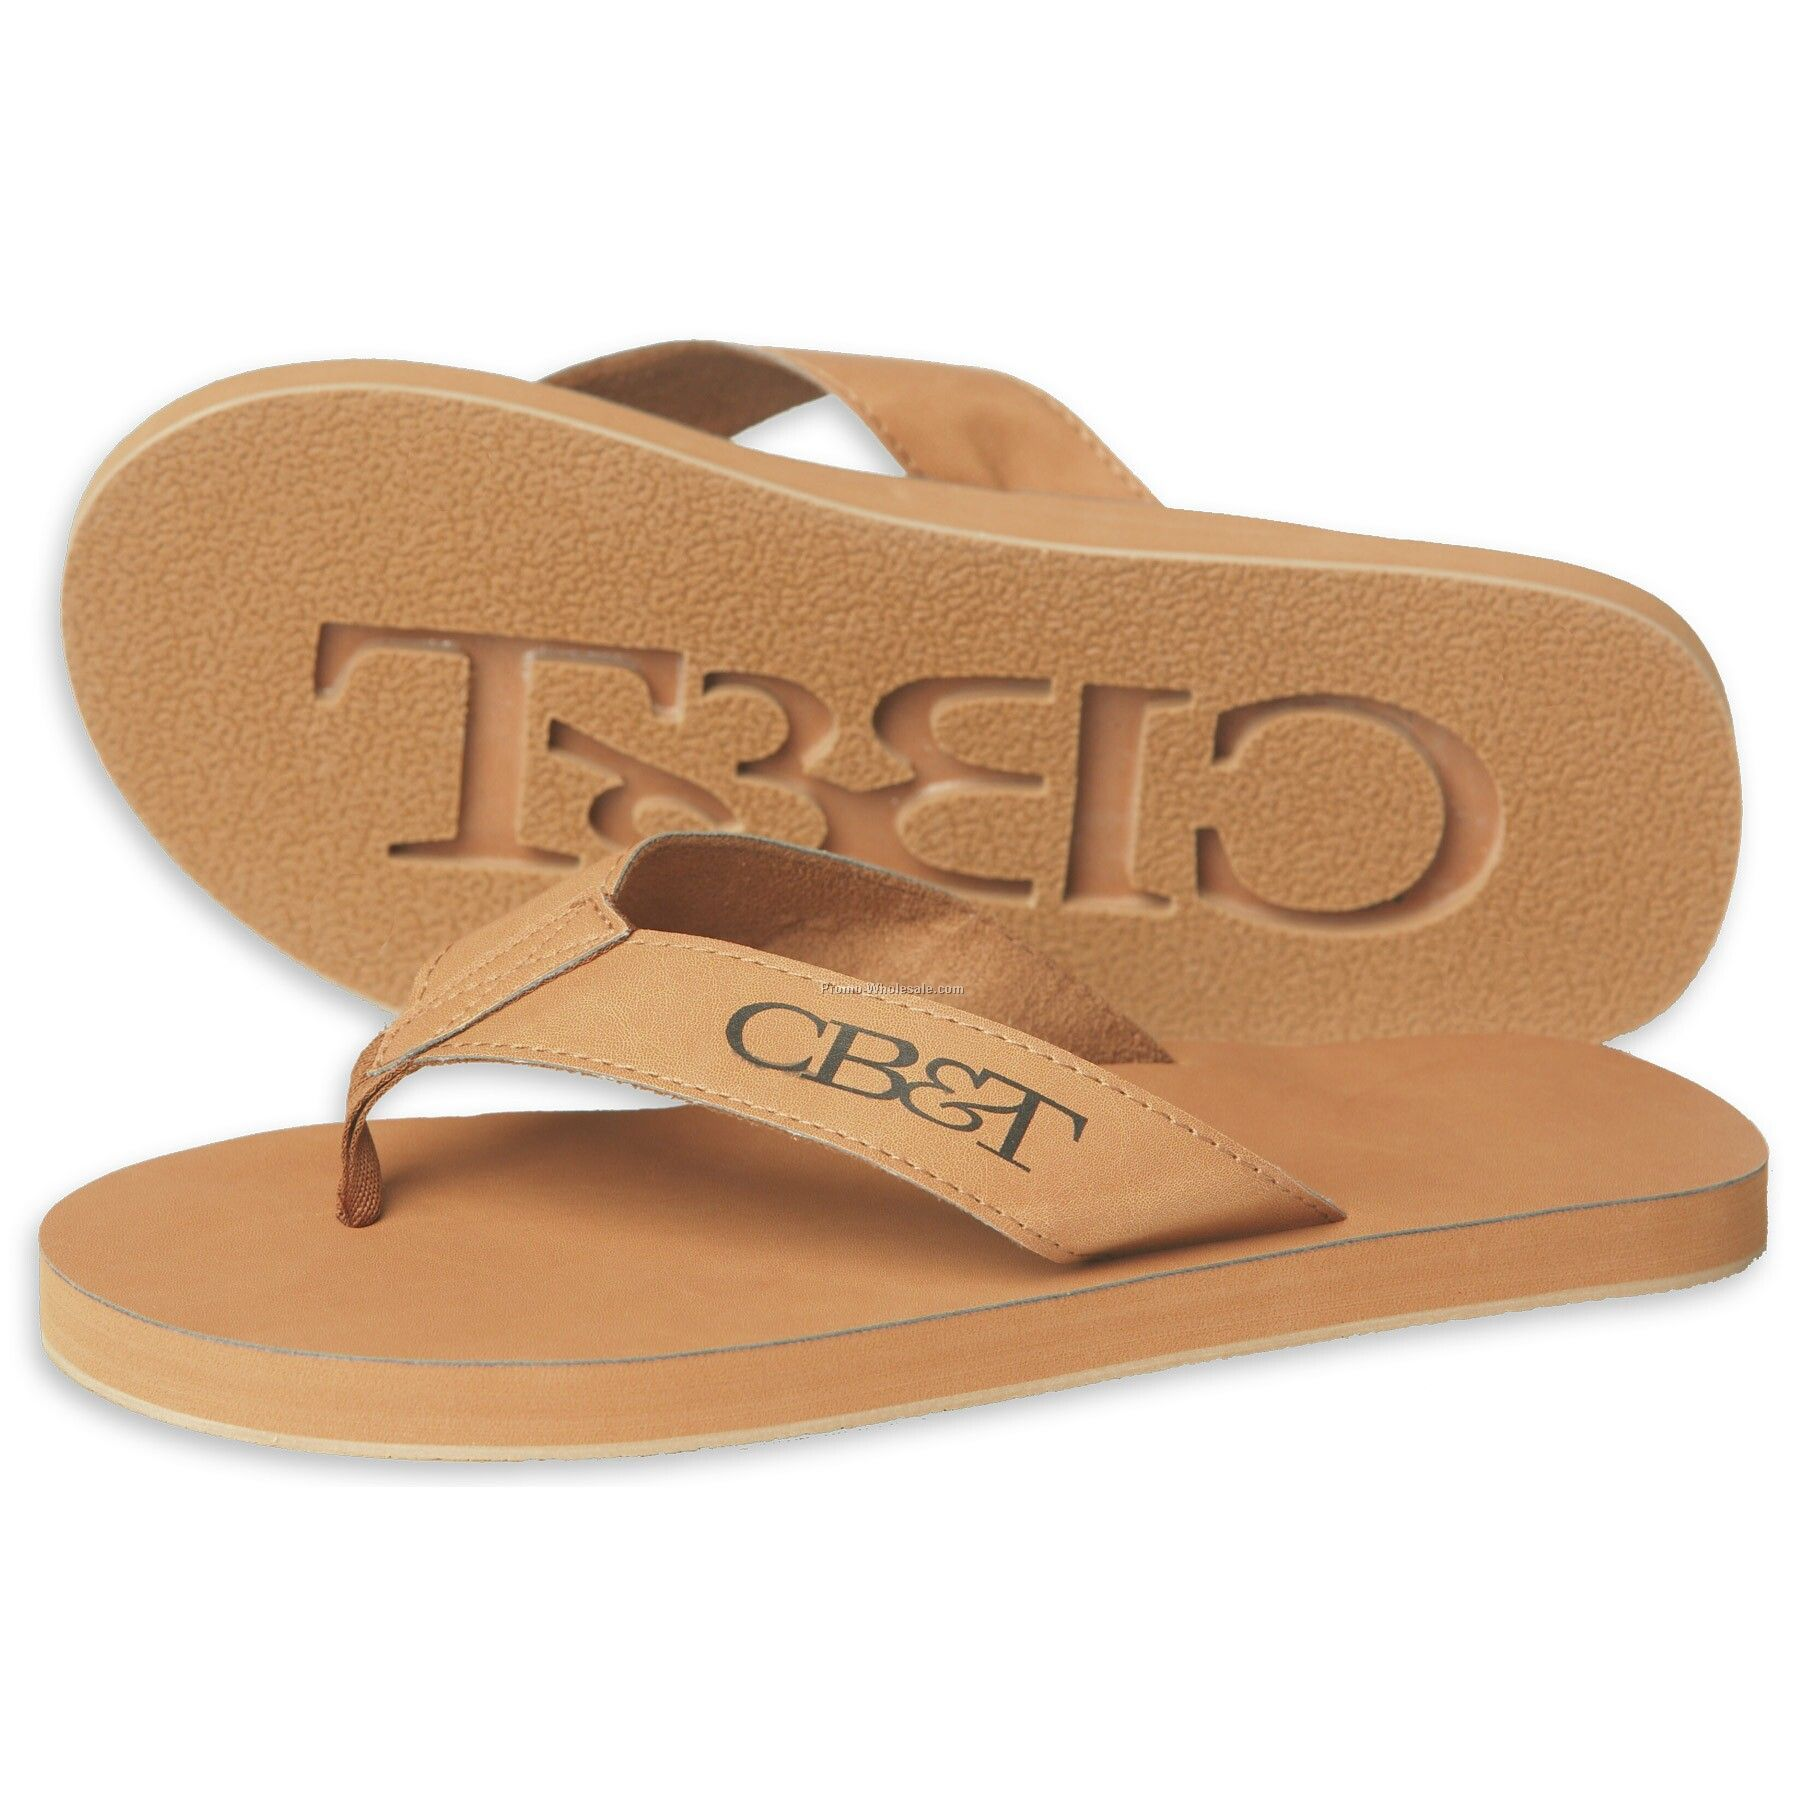 The Del Rey Sandals - Synthetic Leather With Arch Support (Import)